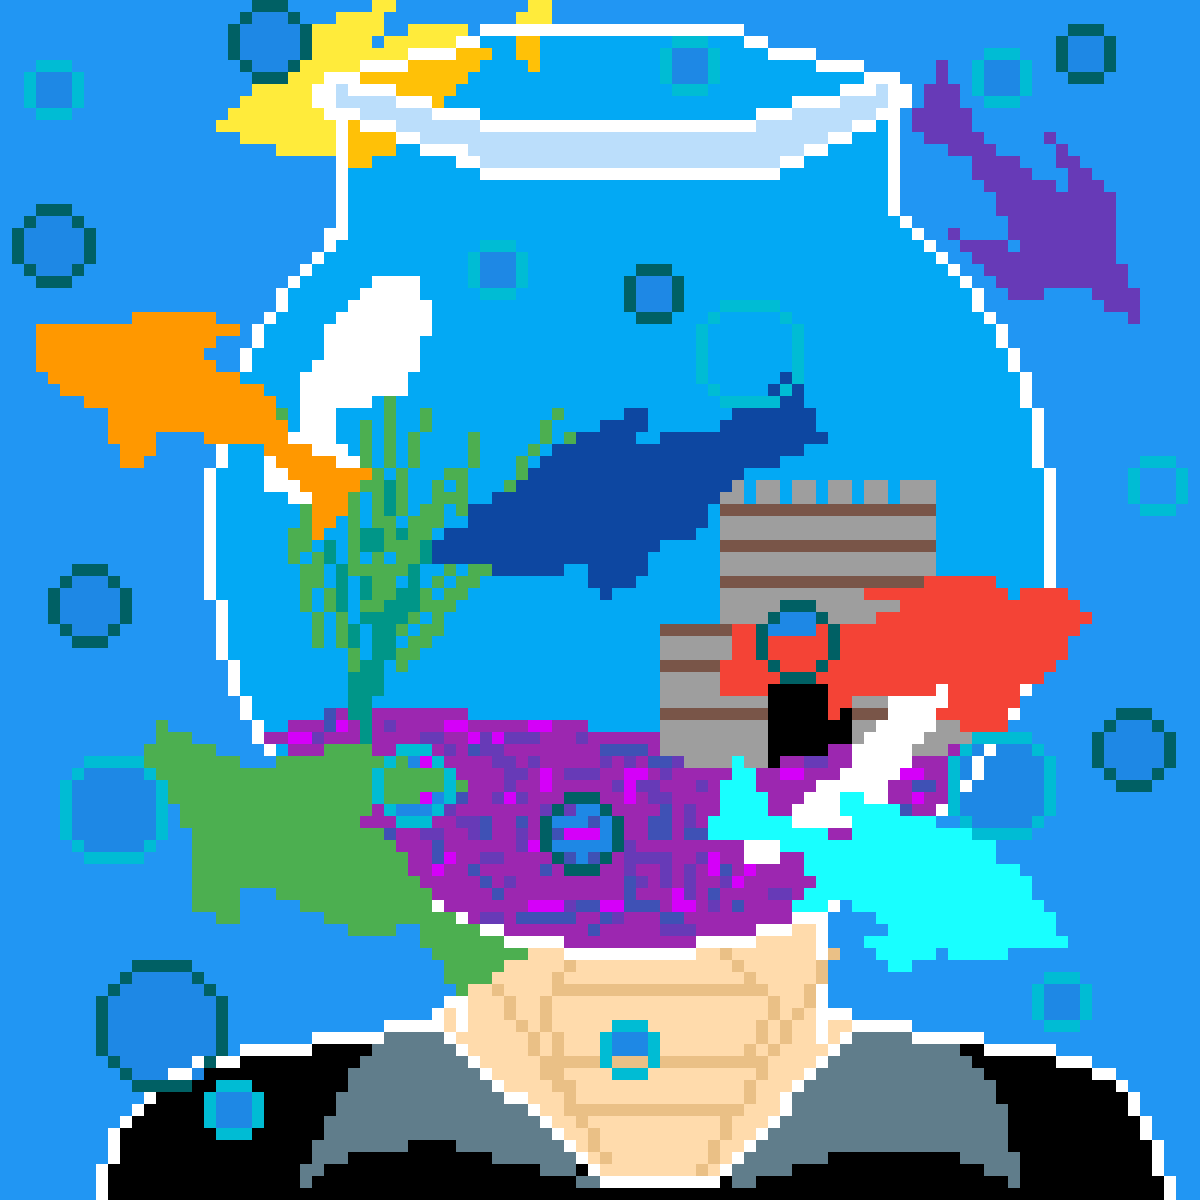 main-image-The Fishbowl Mind  by DraconicWench